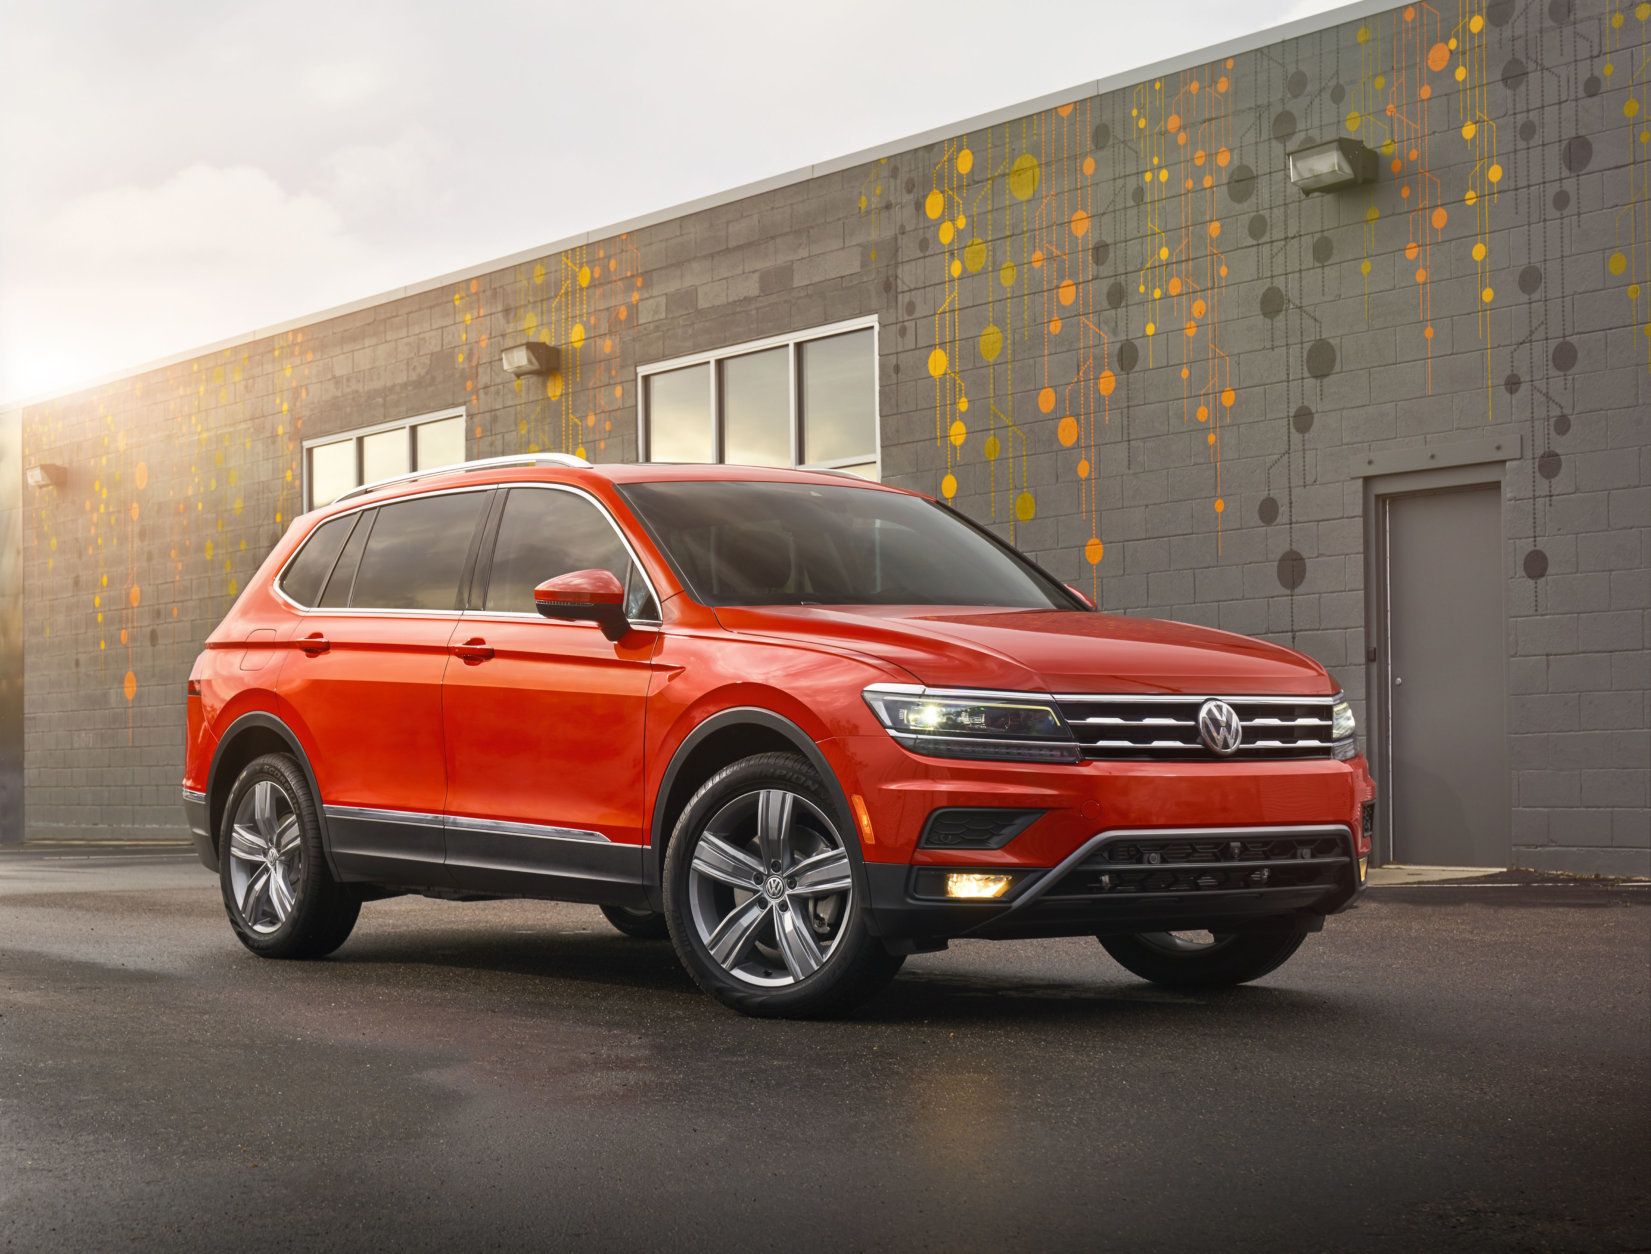 Best New SUV/Crossover for Teens $35,000 to $40,000:  The 2018 Volkswagen Tiguan  (Courtesy Volkswagen of America)